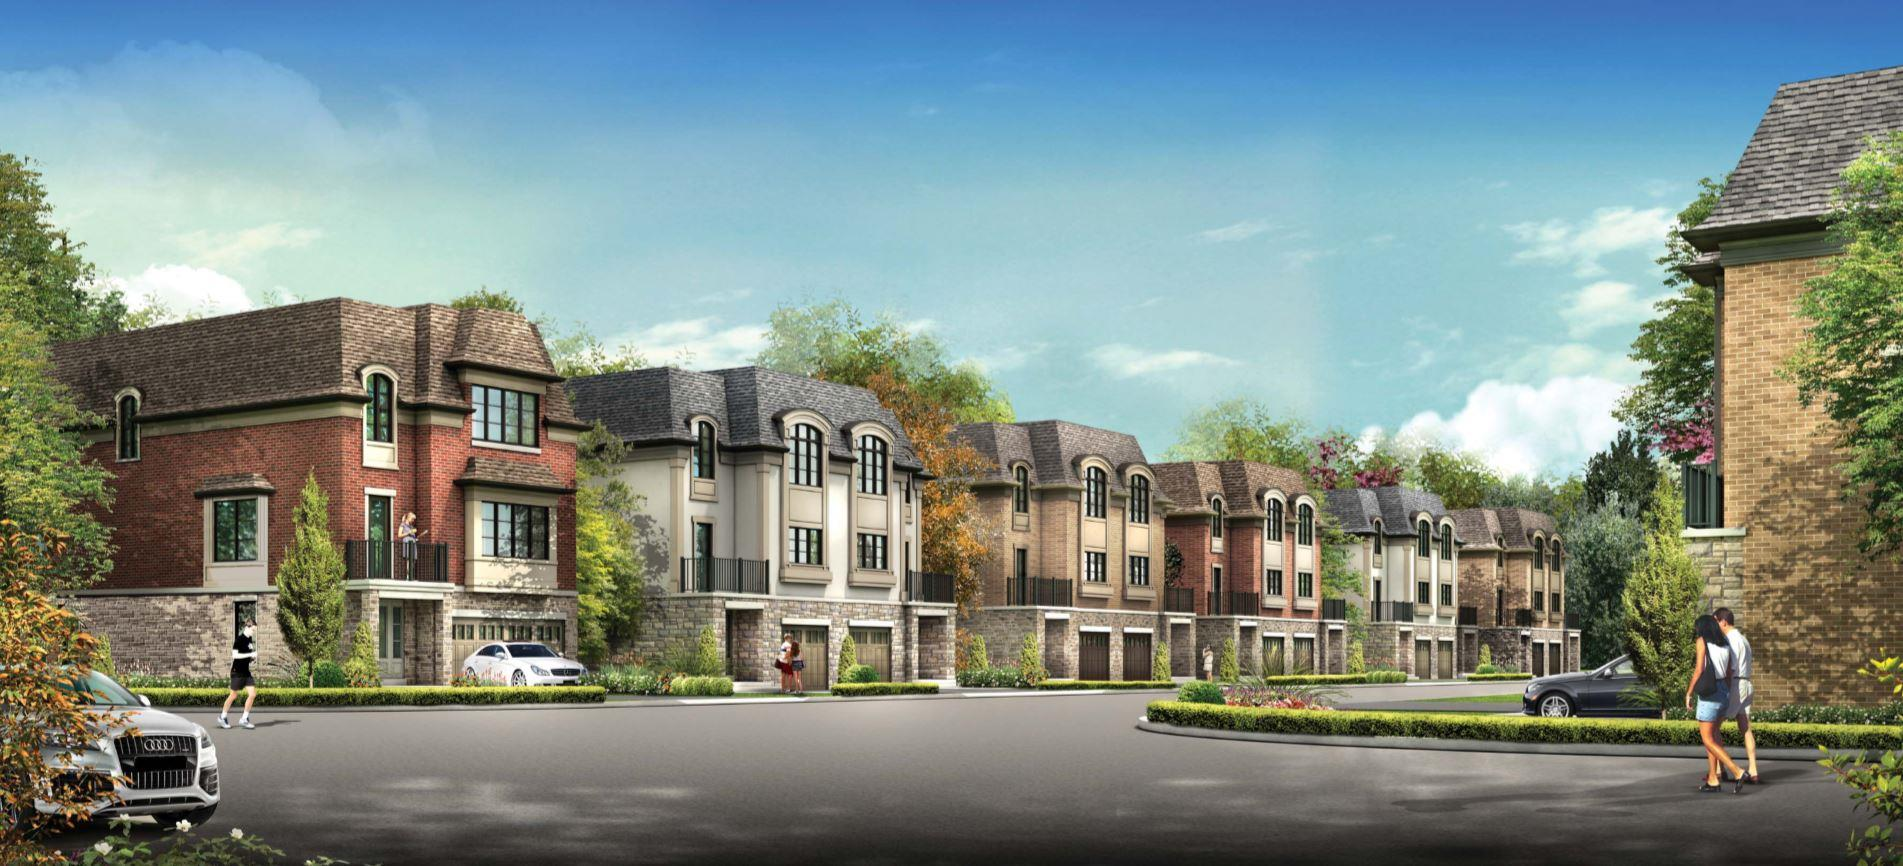 Meadowvale Lane Towns Homes